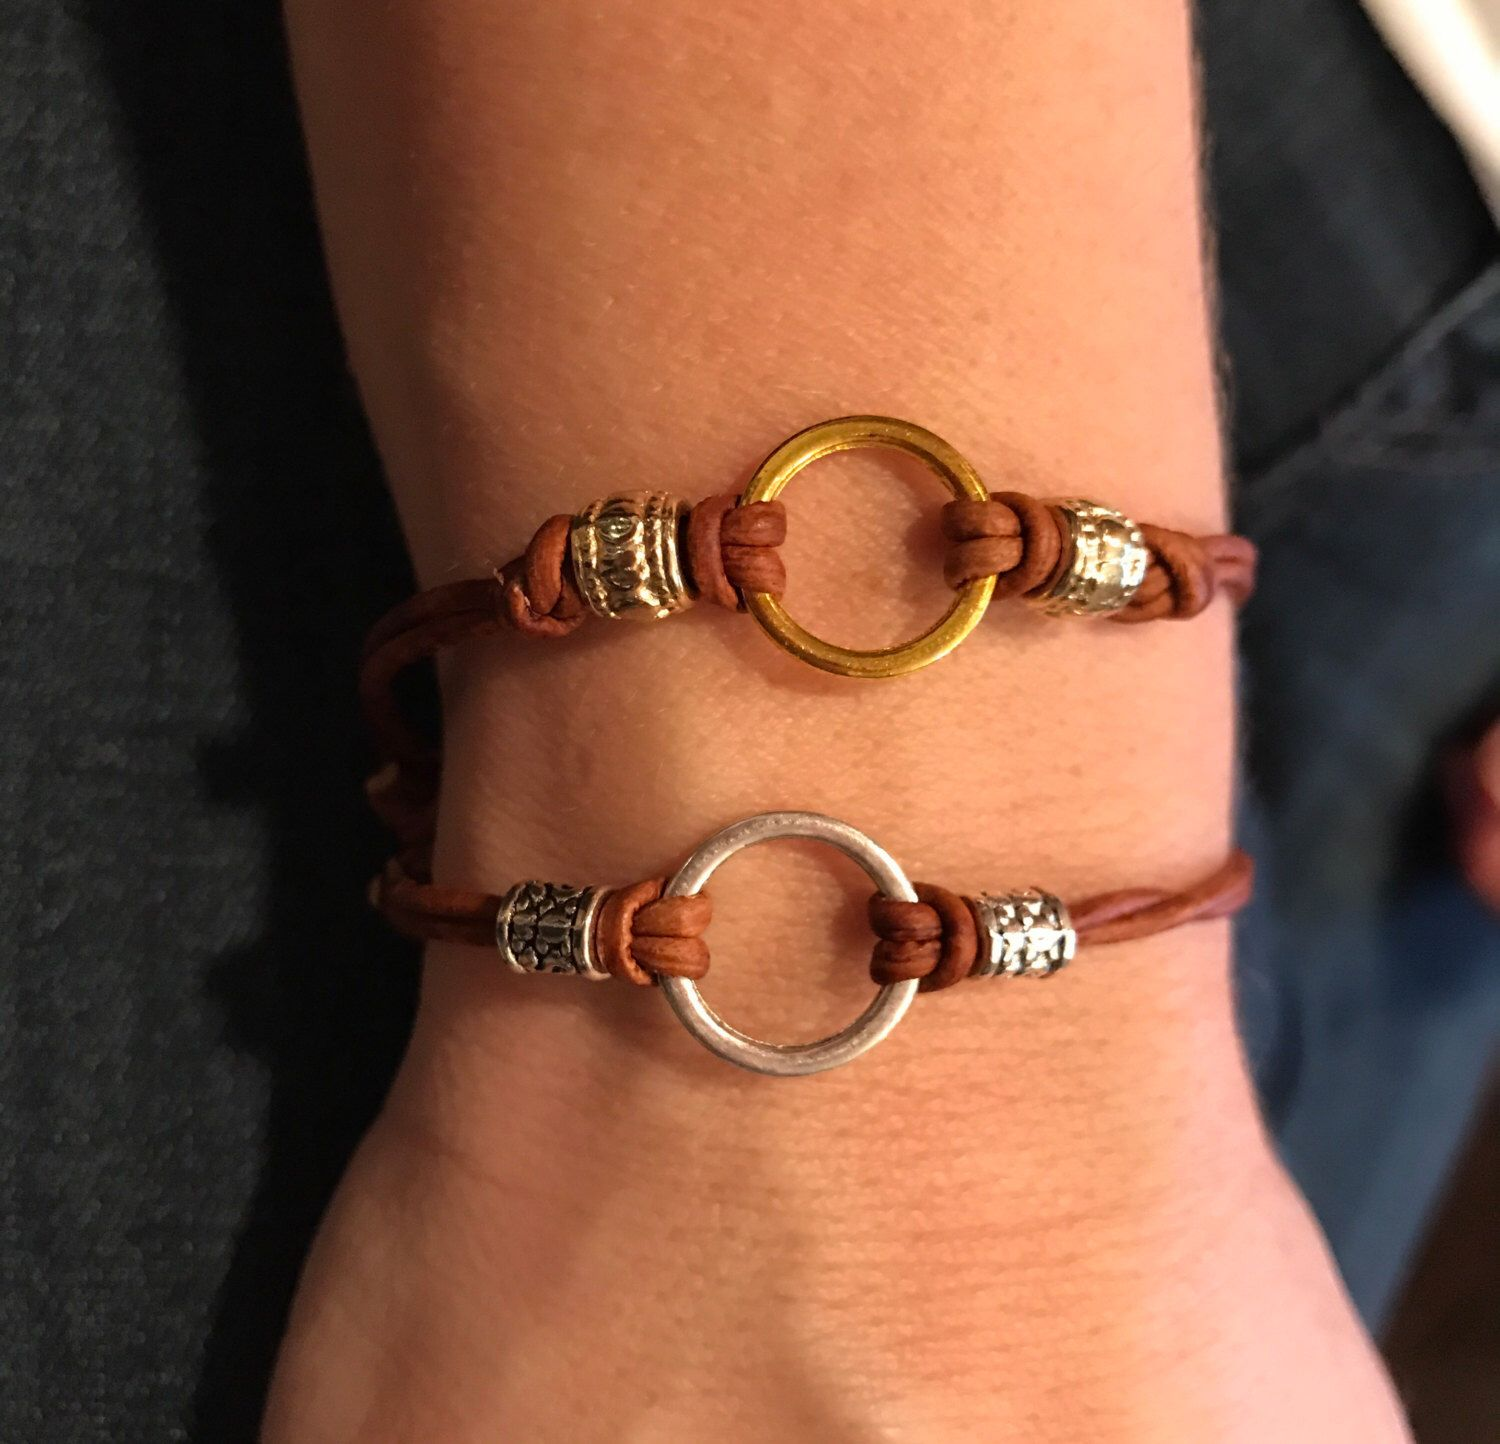 Adjustable leather bracelet with silver or gold circle by AdornedBySuzie on Etsy https://www.etsy.com/listing/499124505/adjustable-leather-bracelet-with-silver